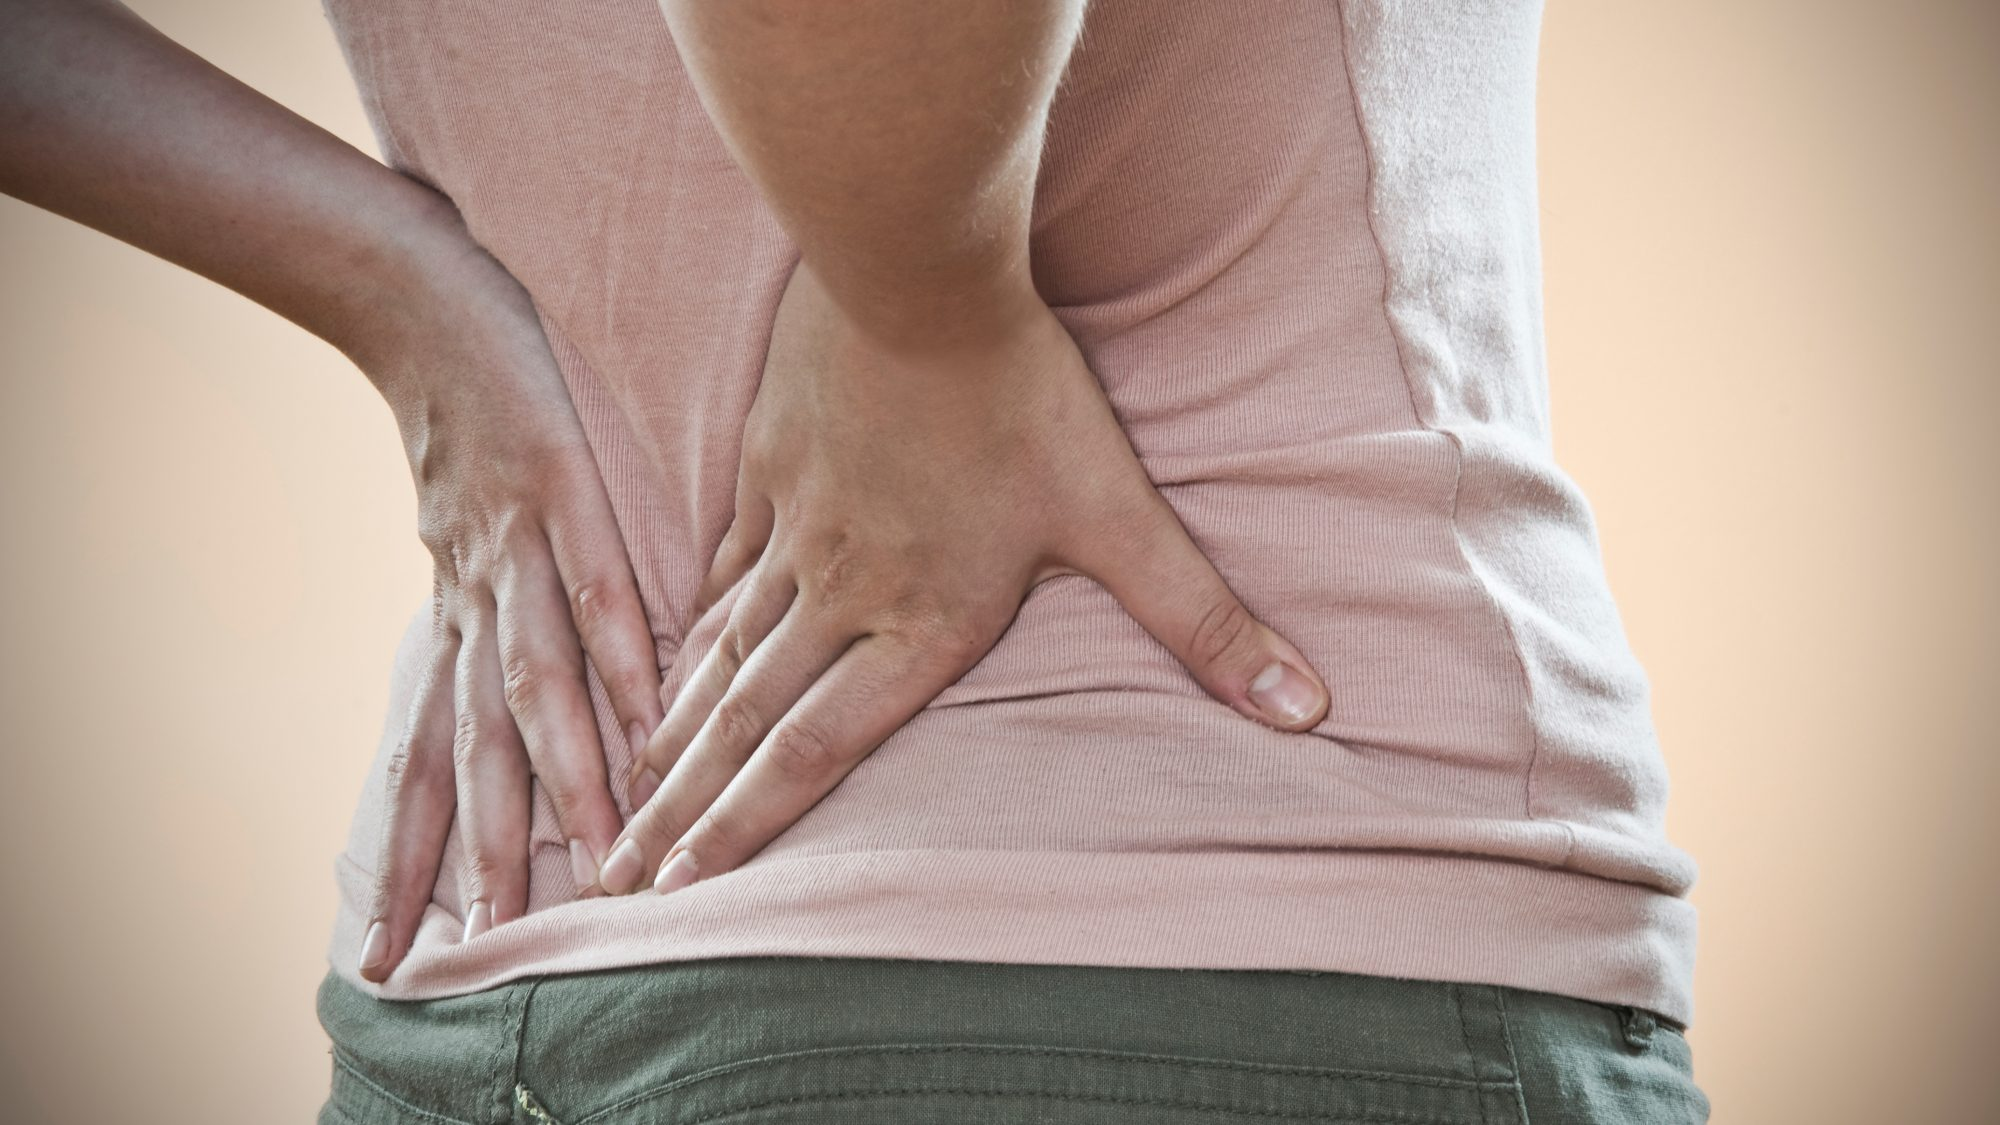 Lower back pain image: woman holding her lower back in pain